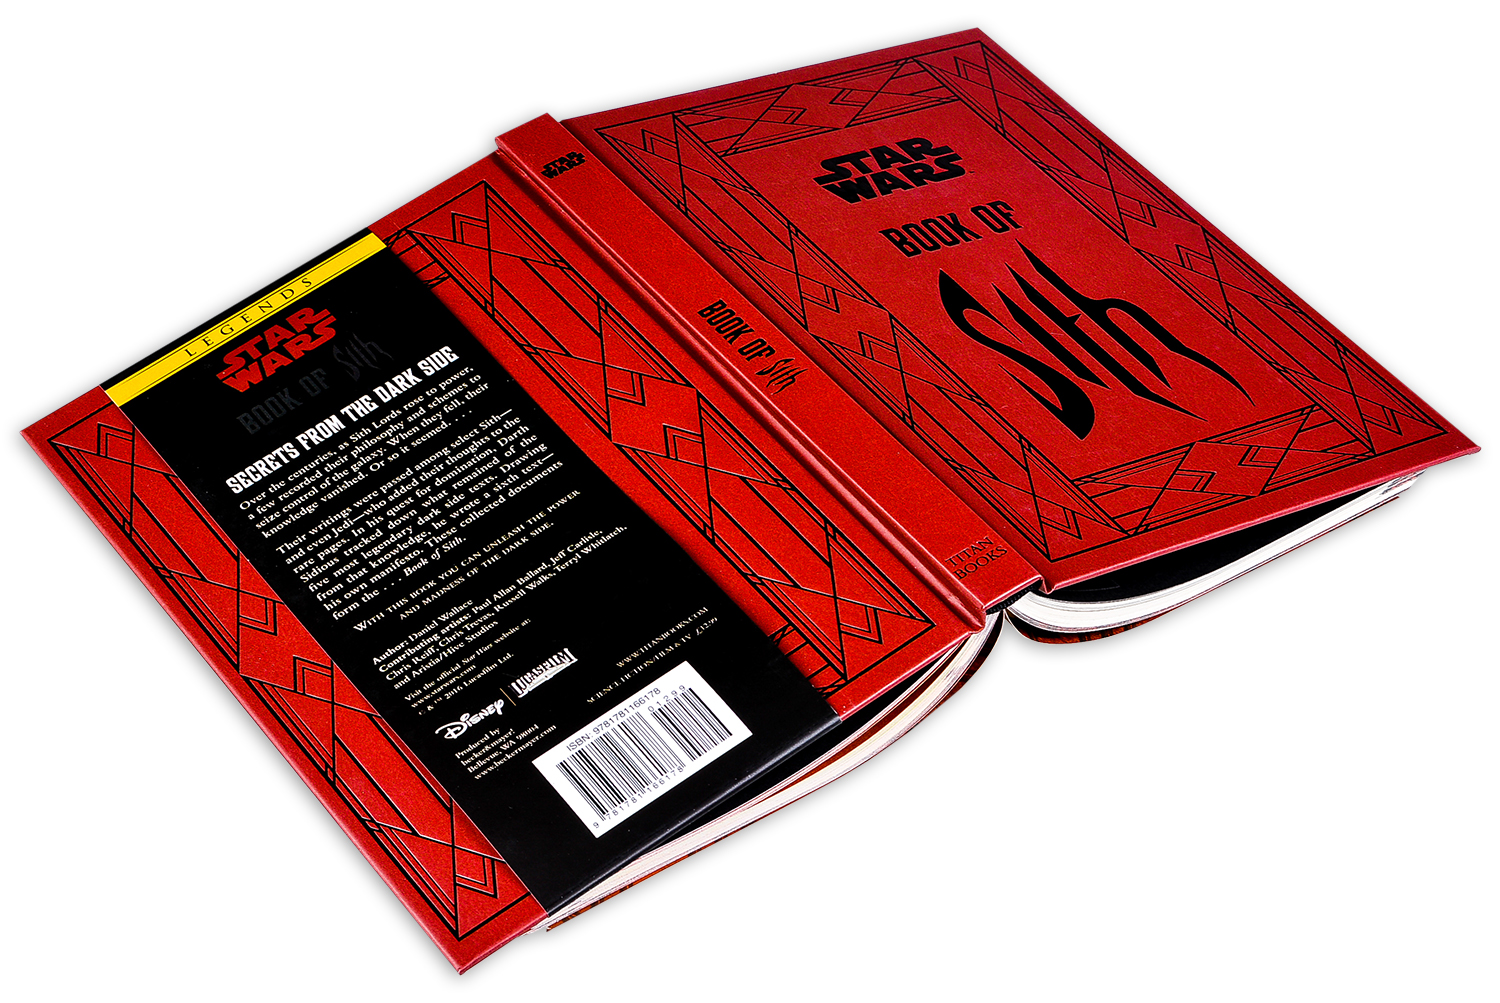 Star Wars. Book of Sith: Secrets from the Dark Side